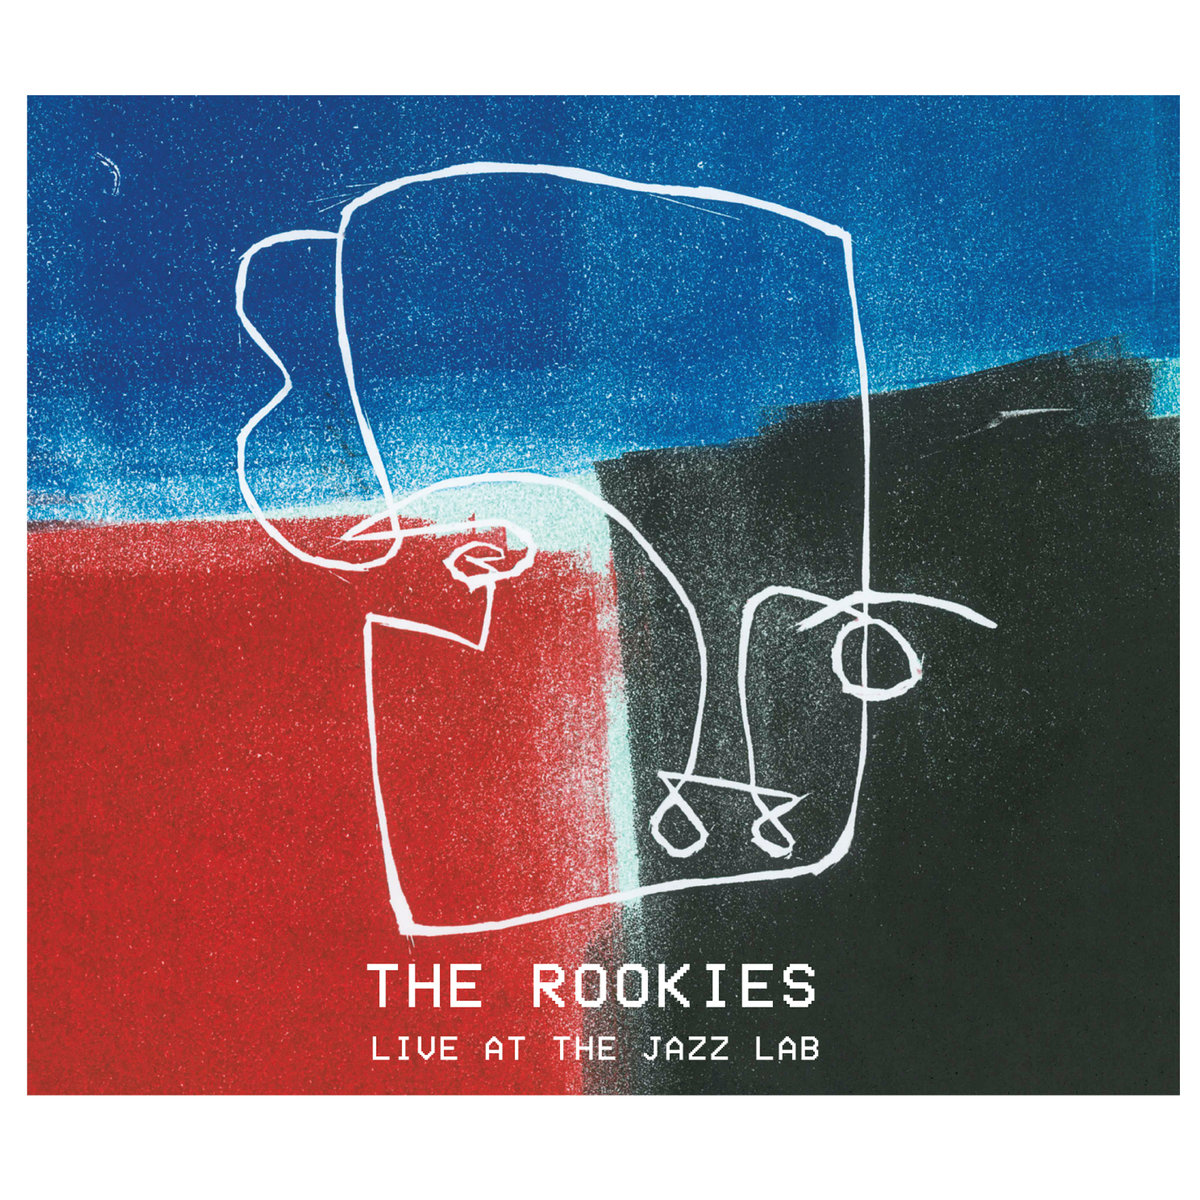 The Rookies recorded live at the Jazzlab and engineered, mixed, and mastered by Myles Mumford